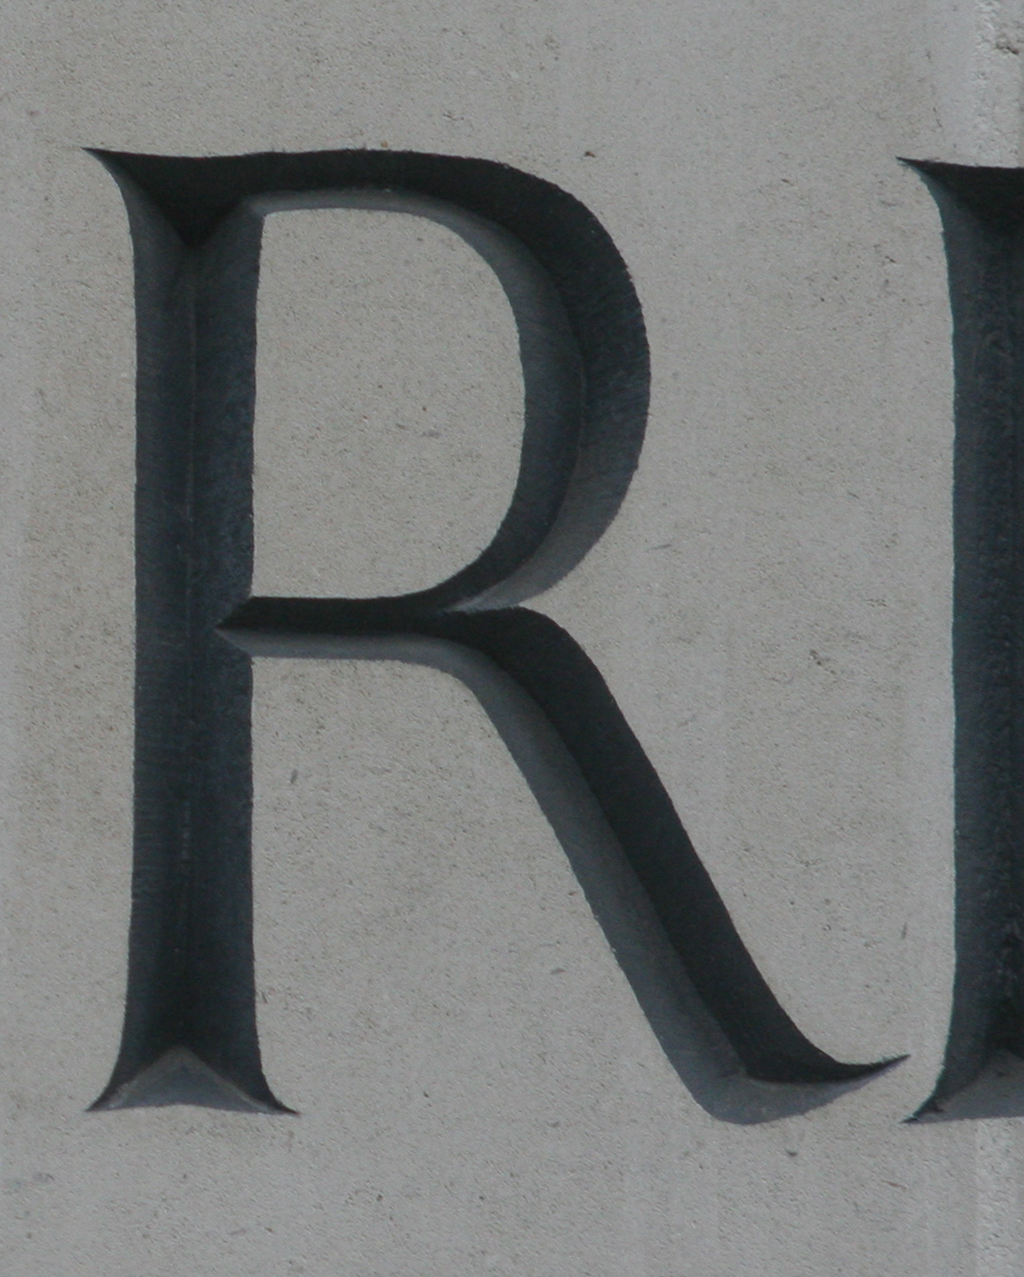 R from inscription on Haberdashers Hall (Farringdon, London). Photograph 2014 by Paul Shaw.